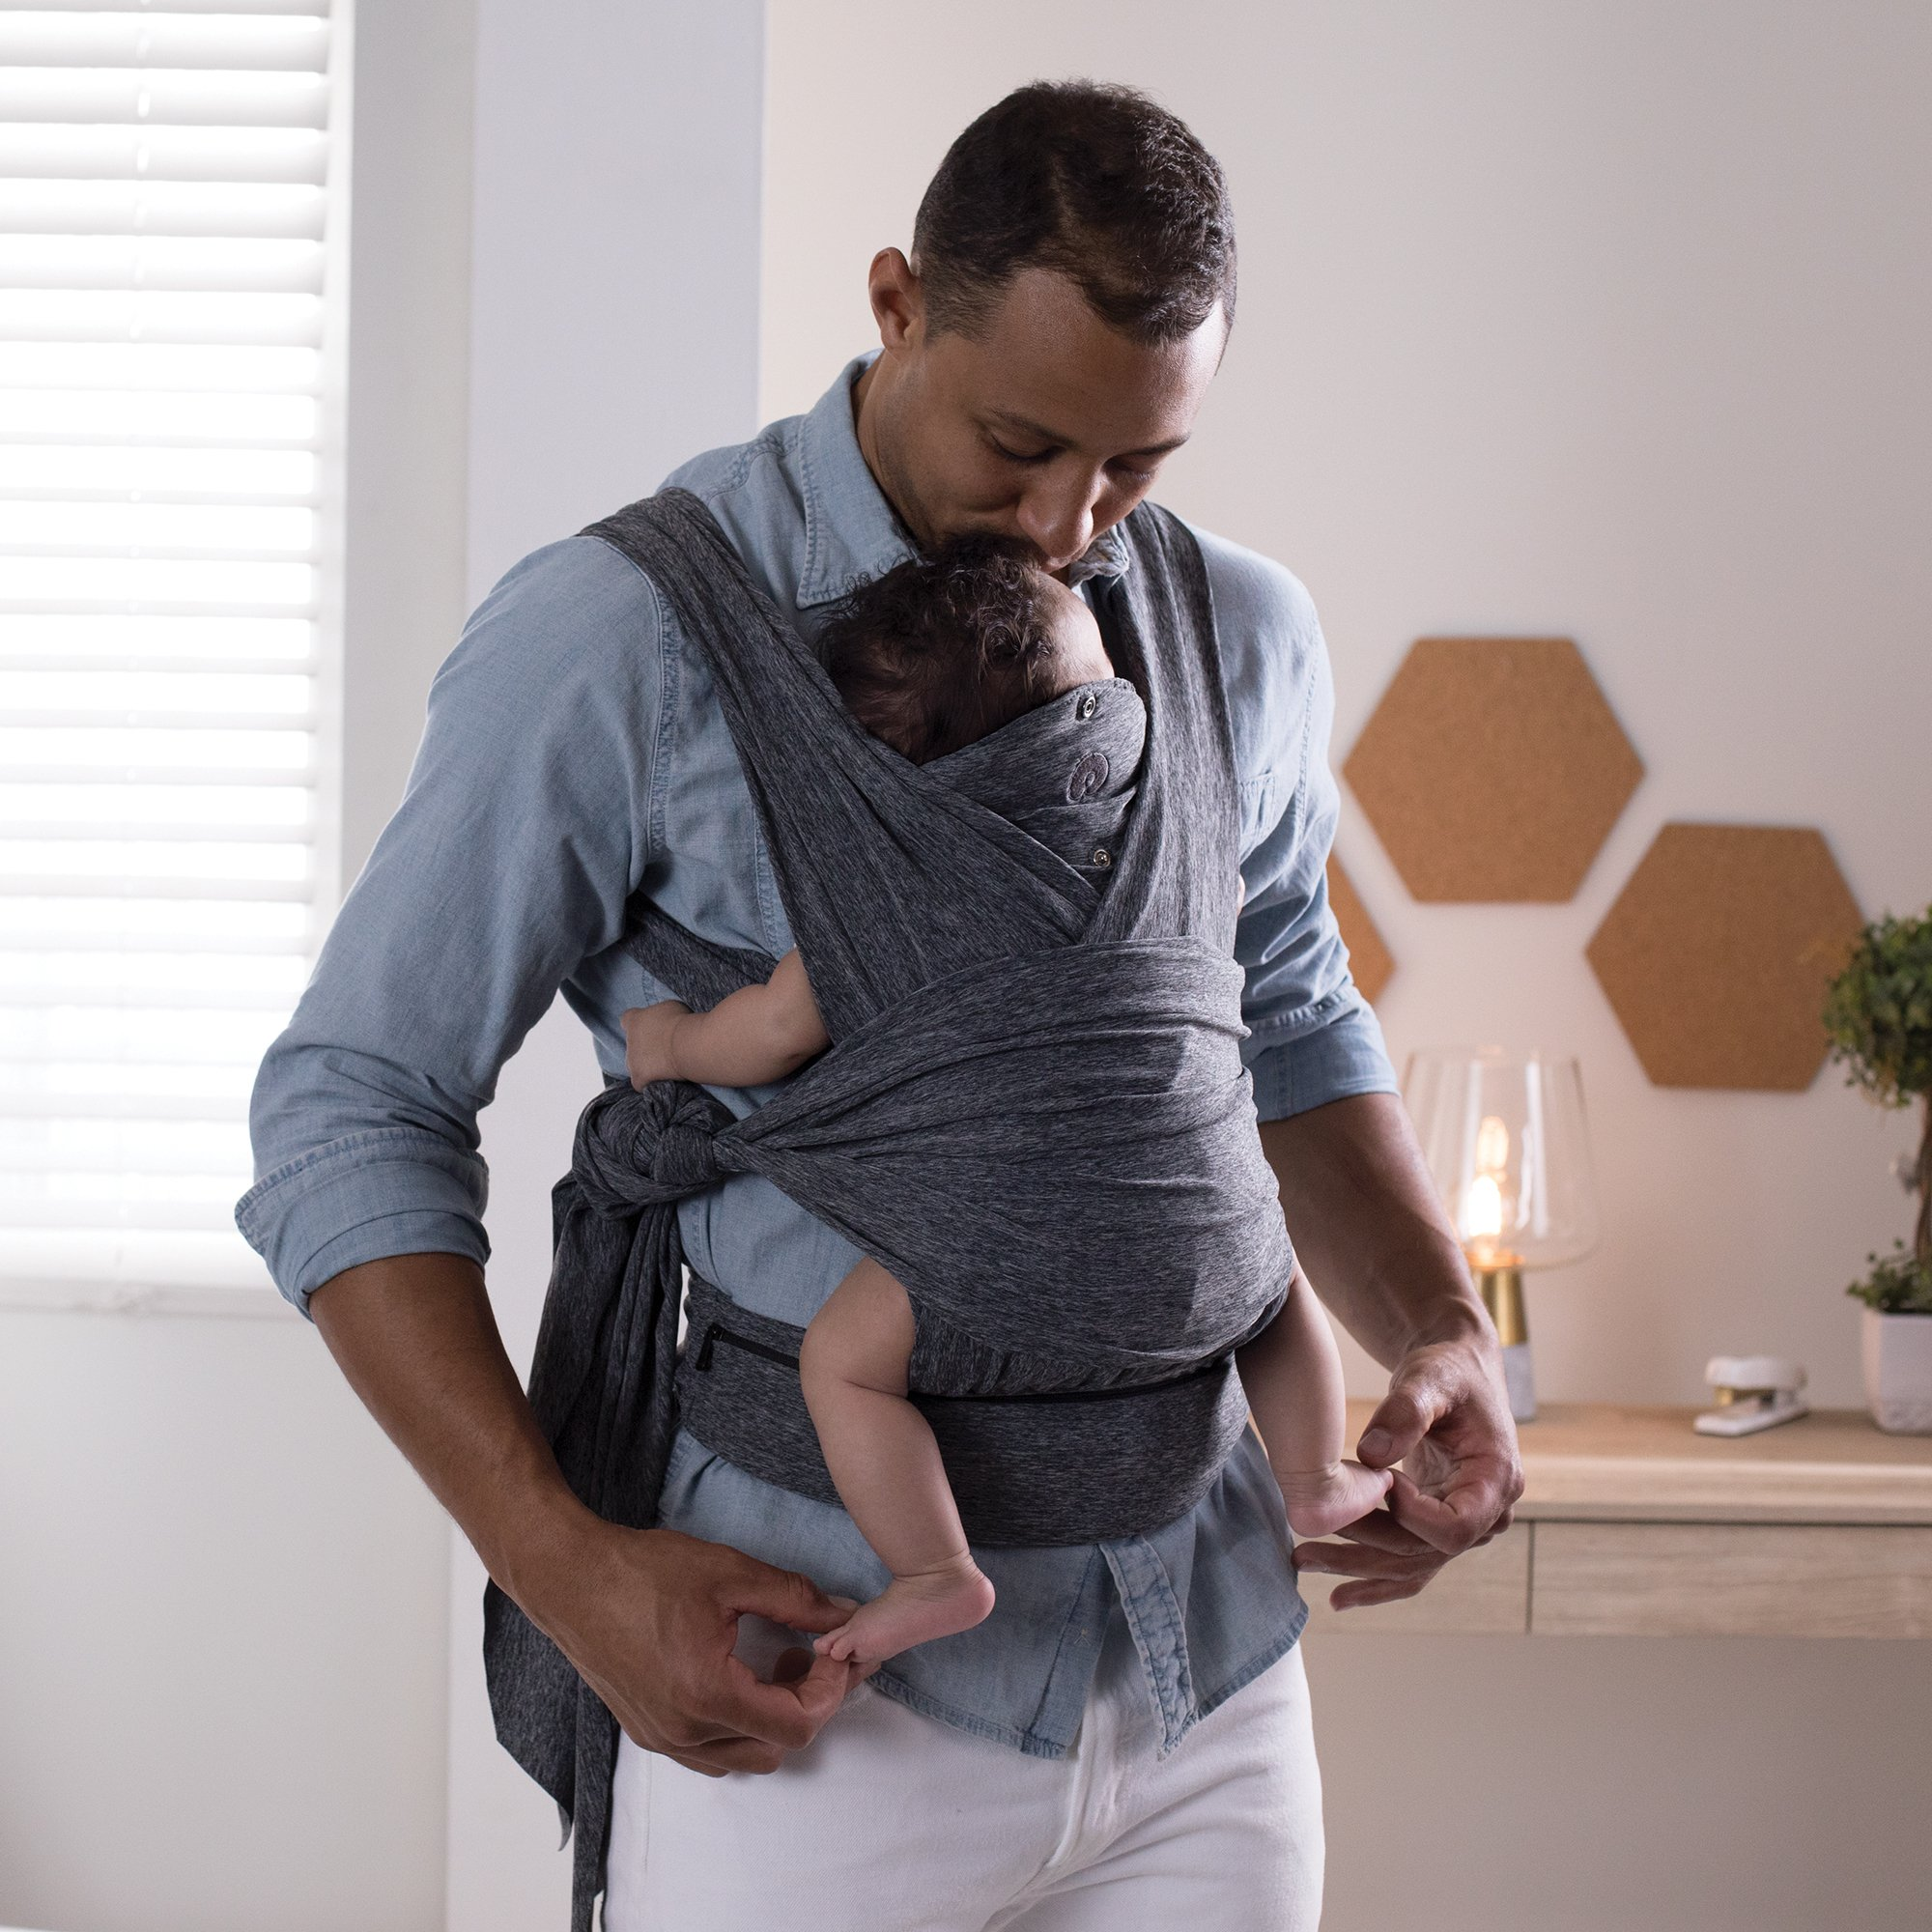 Boppy ComfyFit Baby Carrier, Heathered Gray by Boppy (Image #4)